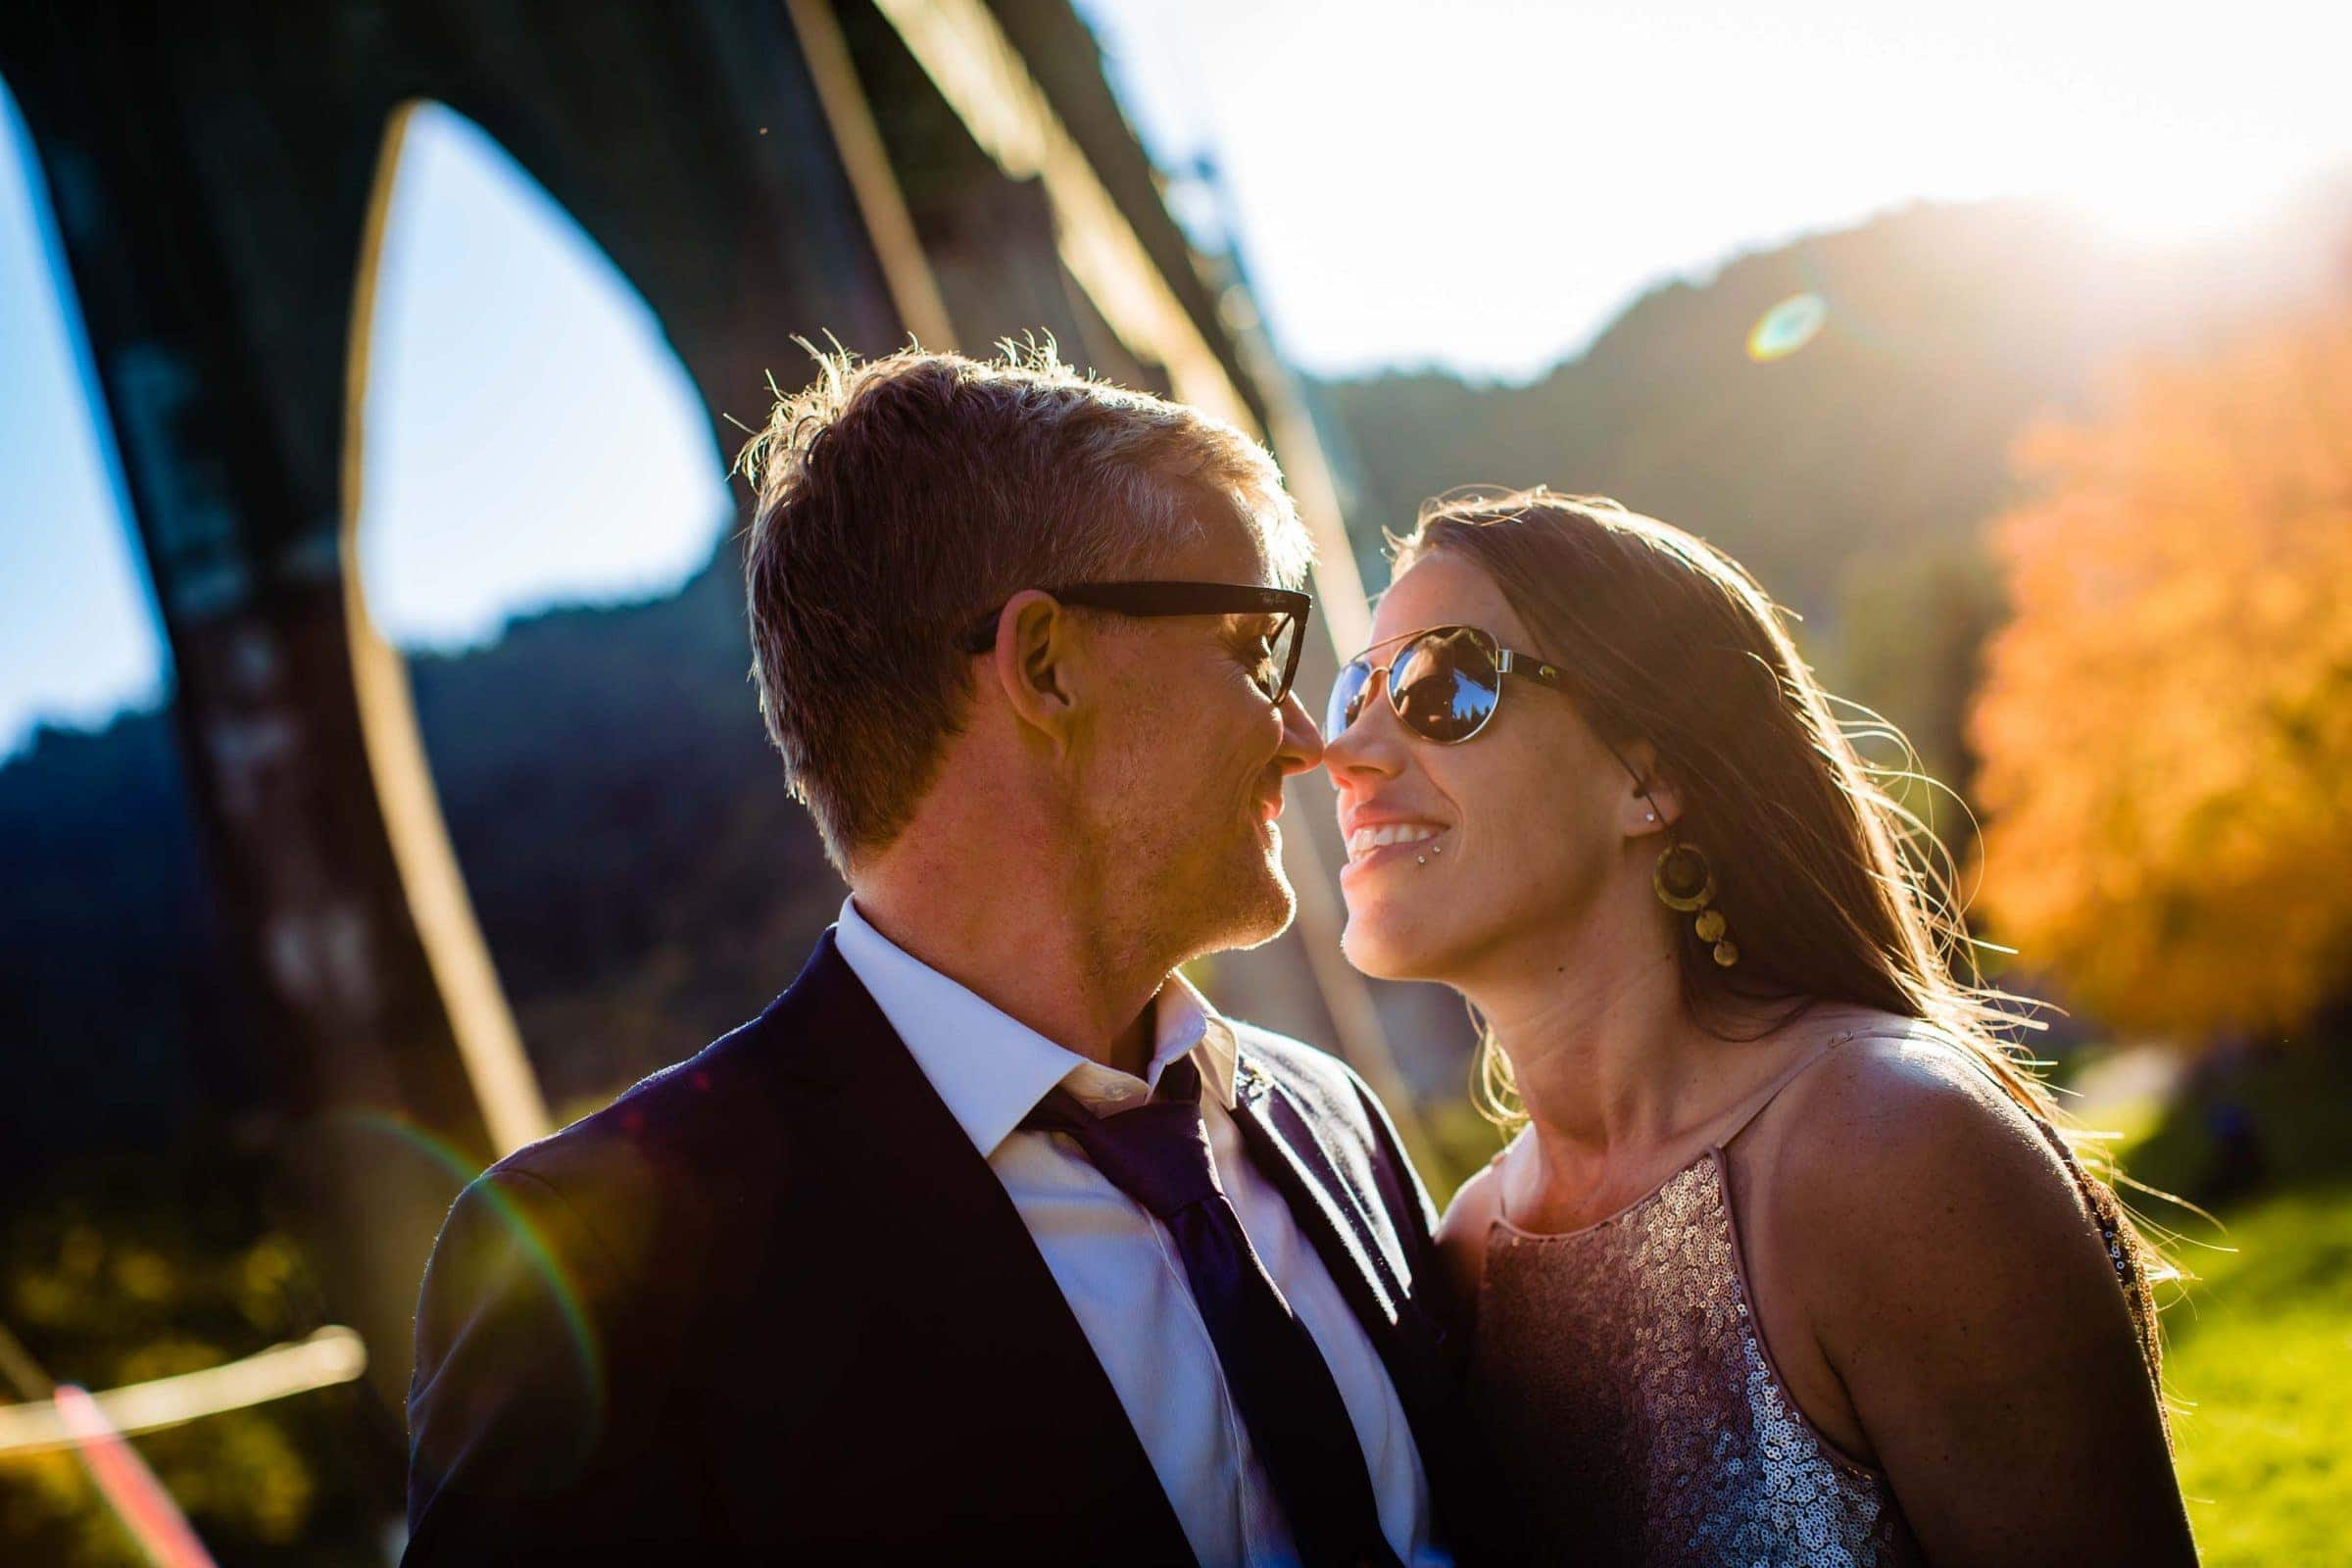 Gorgeous Cathedral Park elopement photo under the St. John's bridge in Portland Oregon